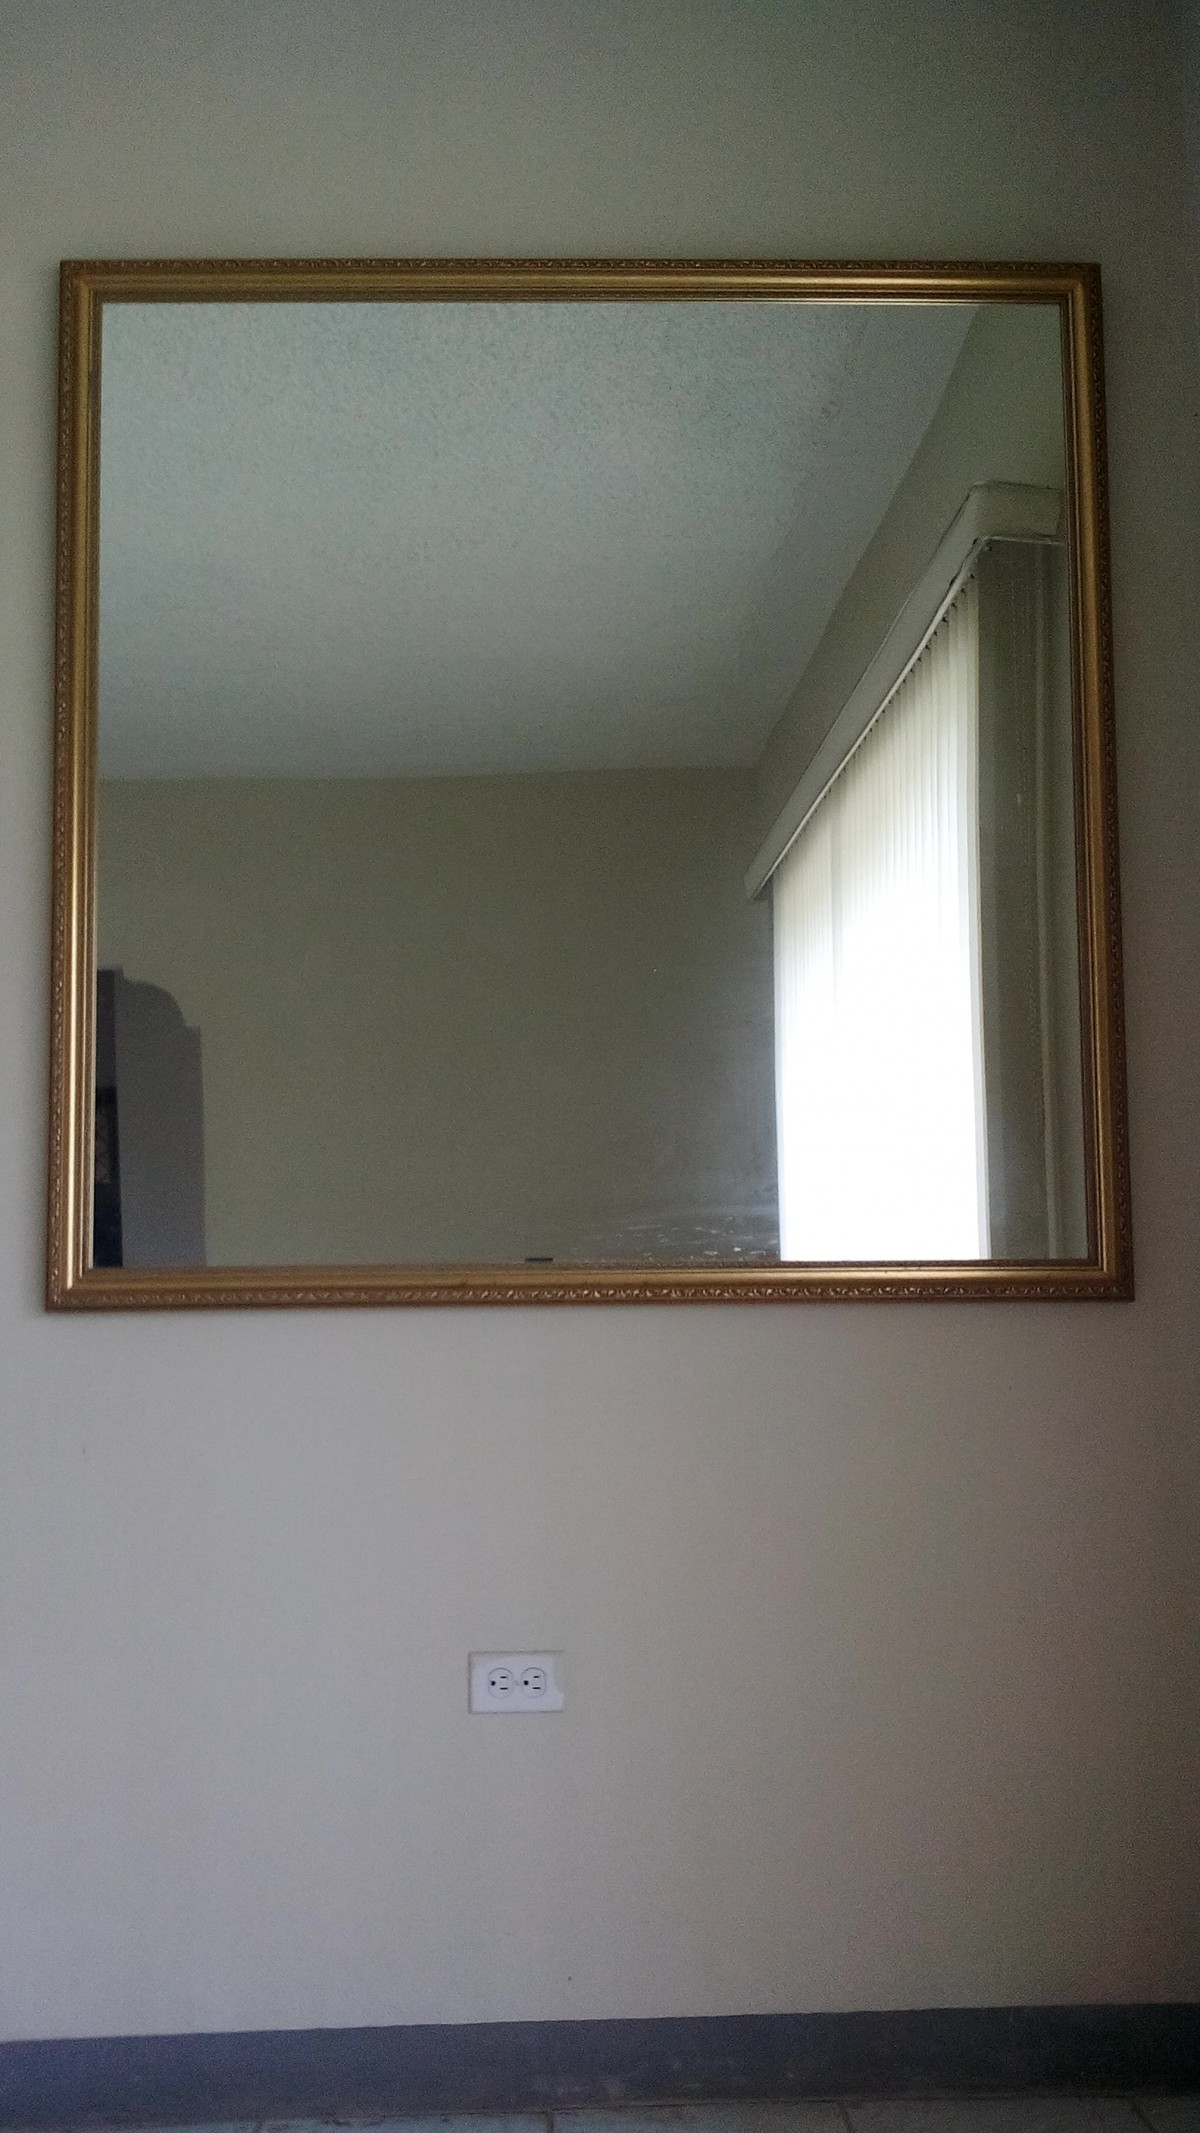 Favorite Big Size Wall Mirrors Intended For Large Size Wall Mirrors For Sale 4284933 In Mandeville Manchester (View 5 of 20)